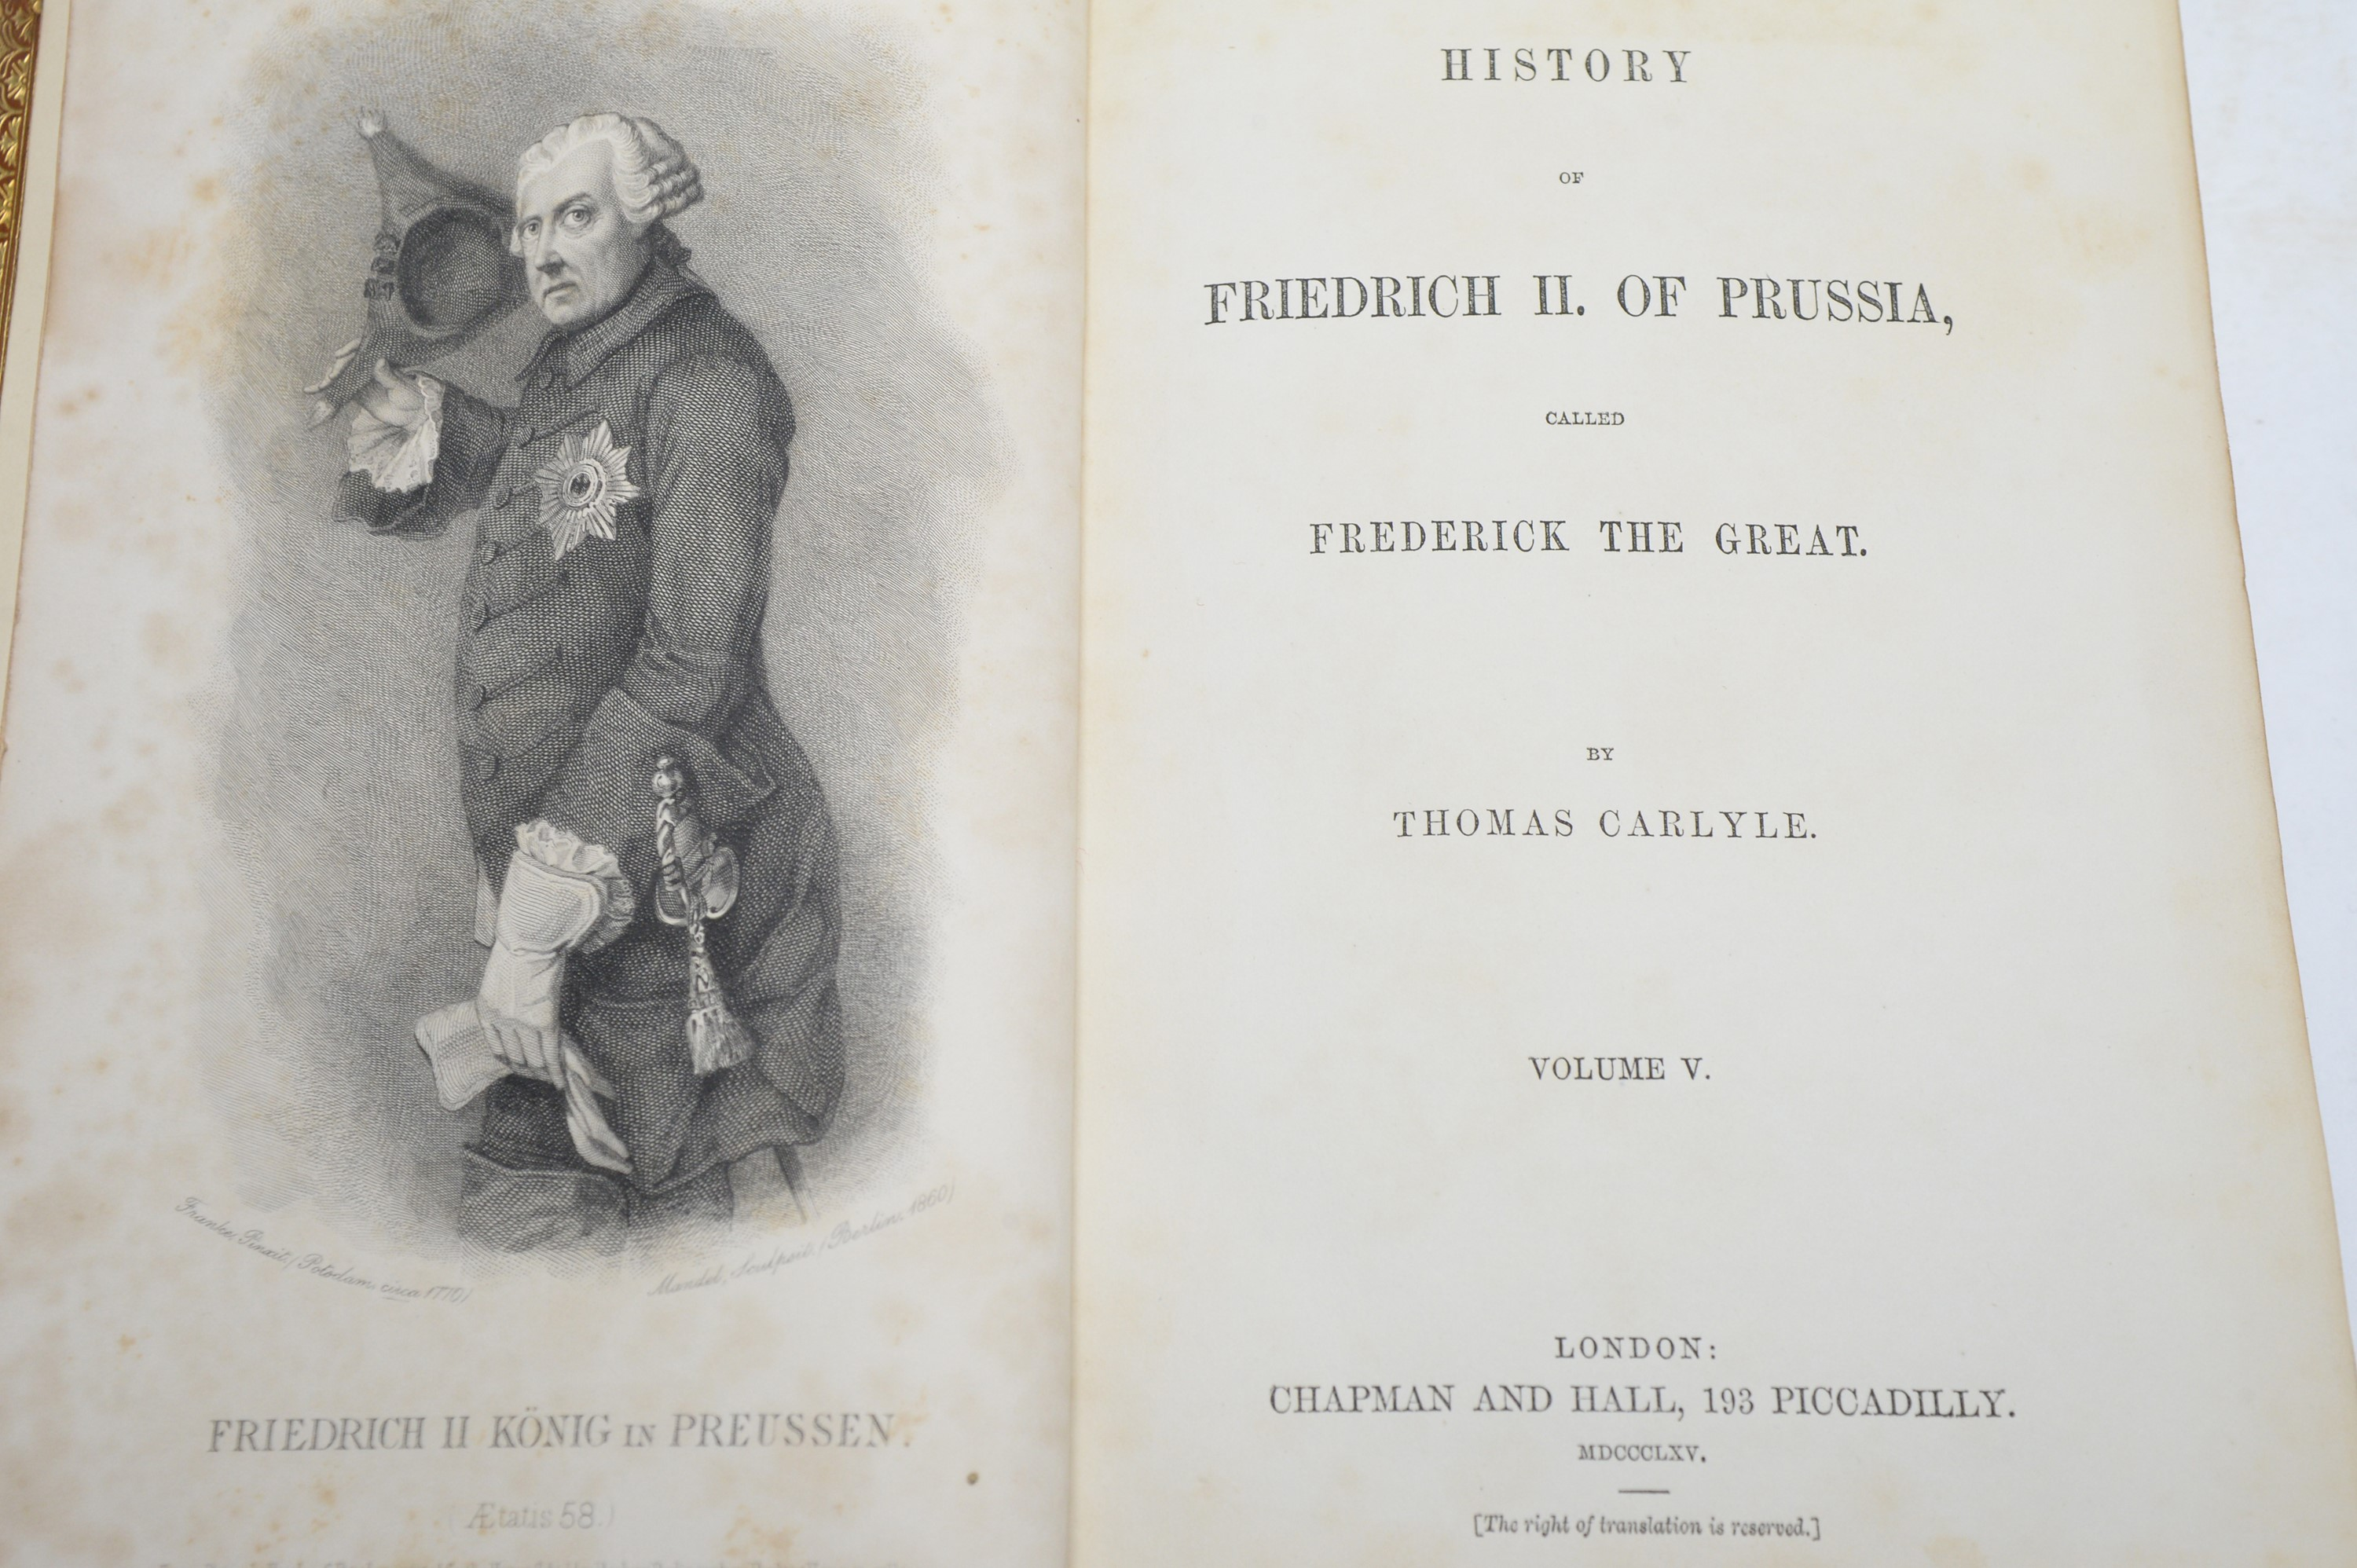 Carlyle (Thomas) History of Frederick The Great of Prussia. - Image 3 of 3